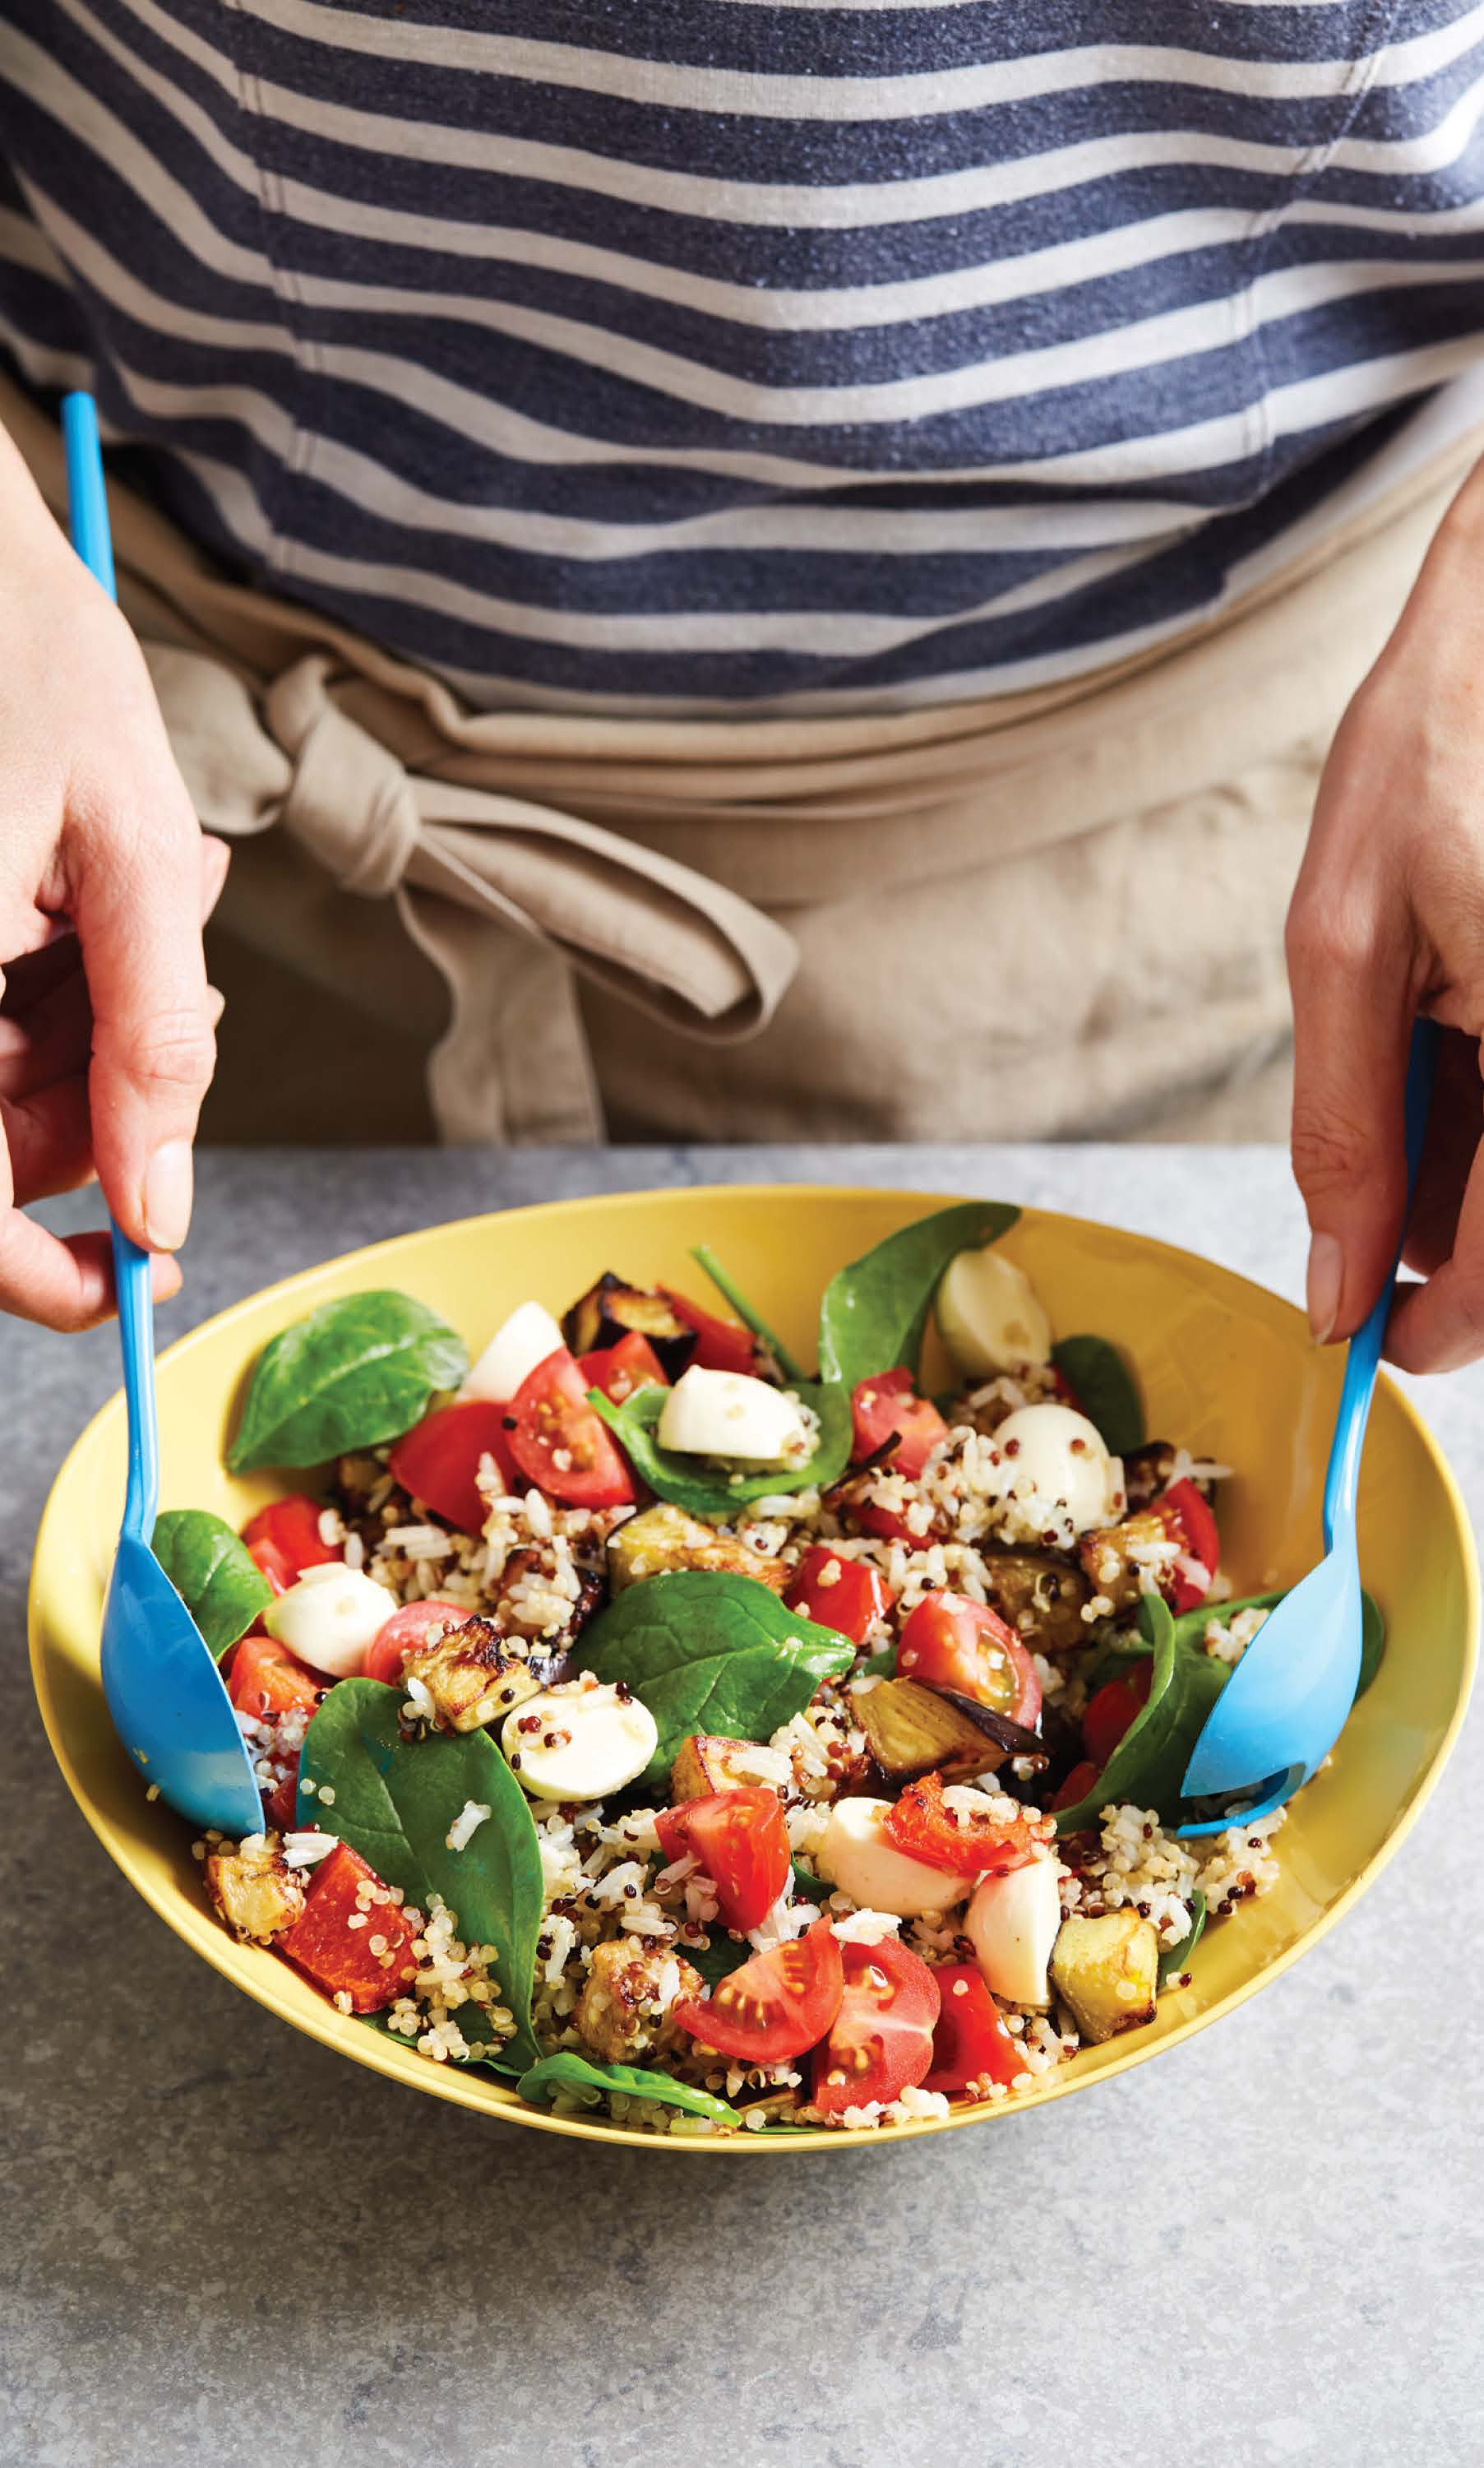 Quinoa and rice salad with bocconcini or haloumi